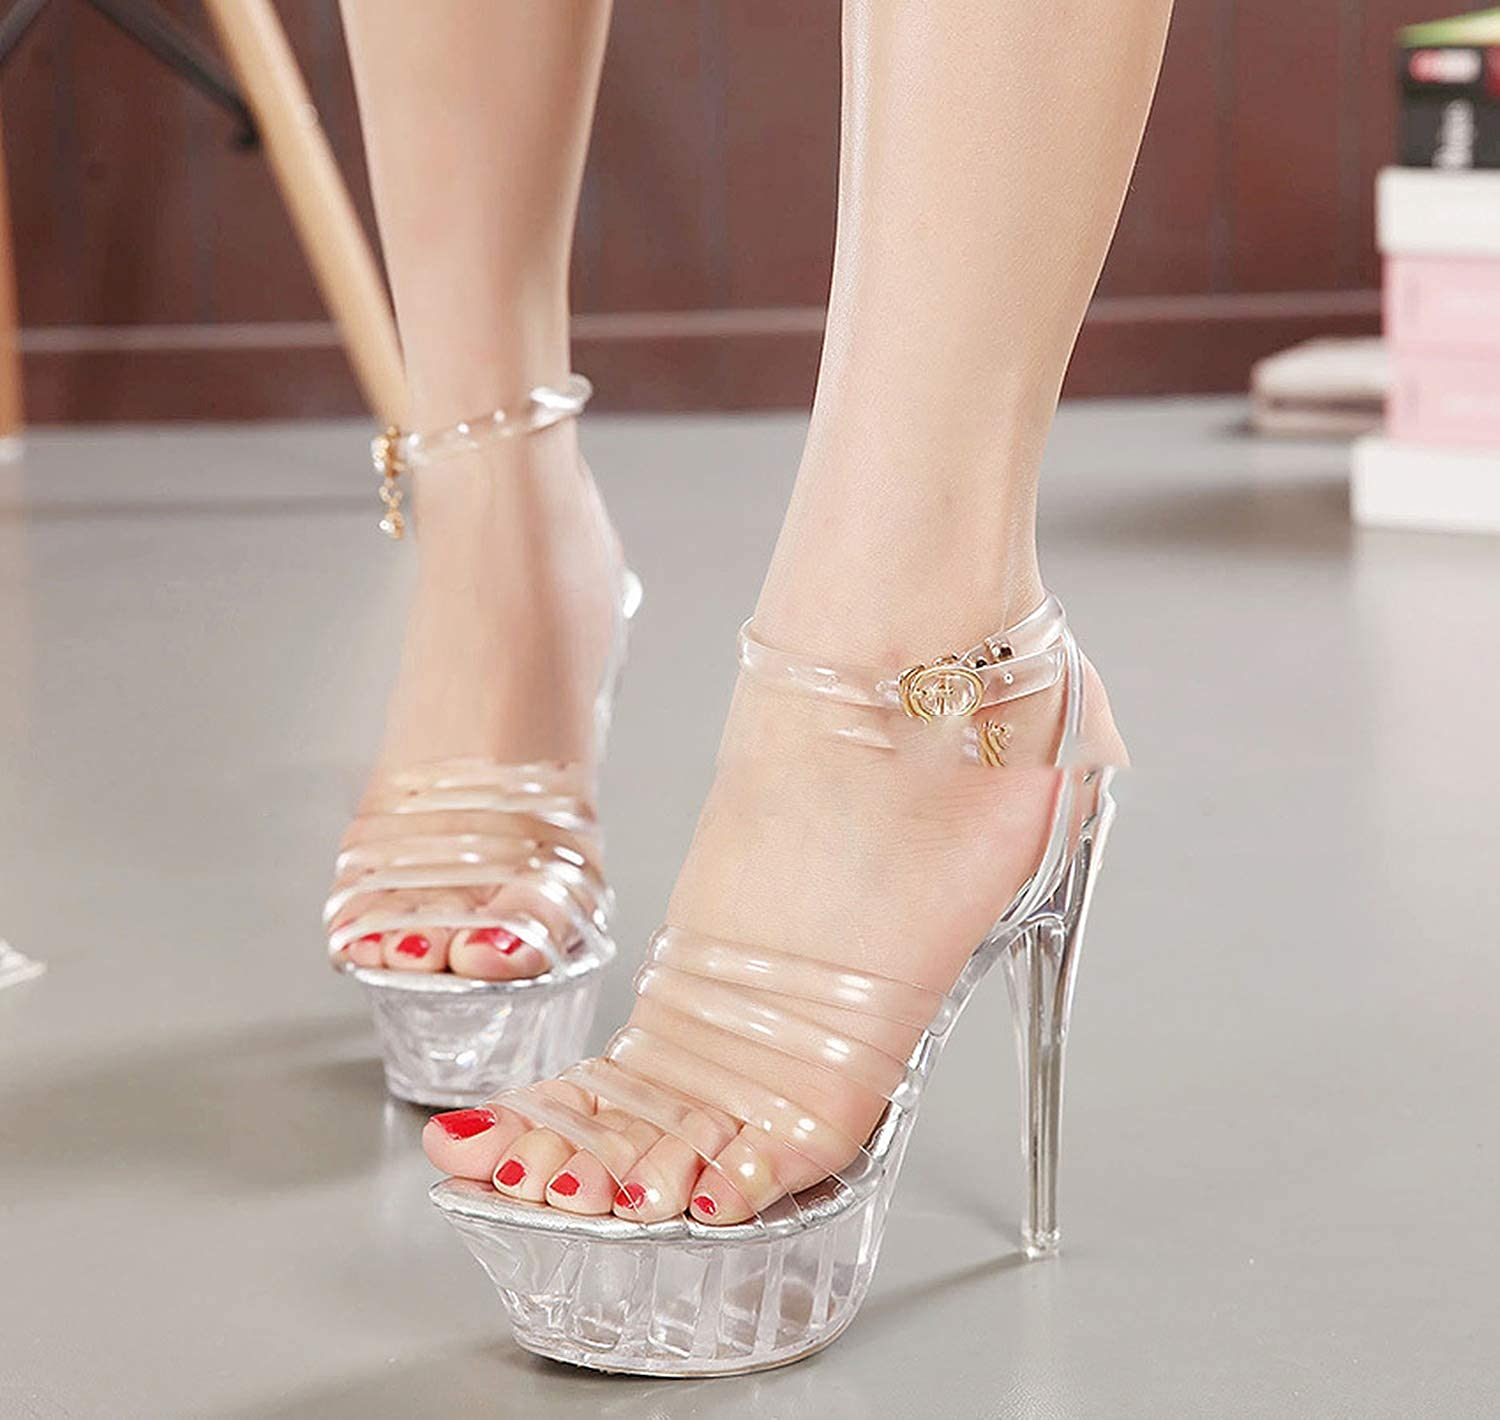 Dream-catching Super high-Heeled Stage Show Sandals Transparent Crystal high-Heeled Shoes Womens Shoes